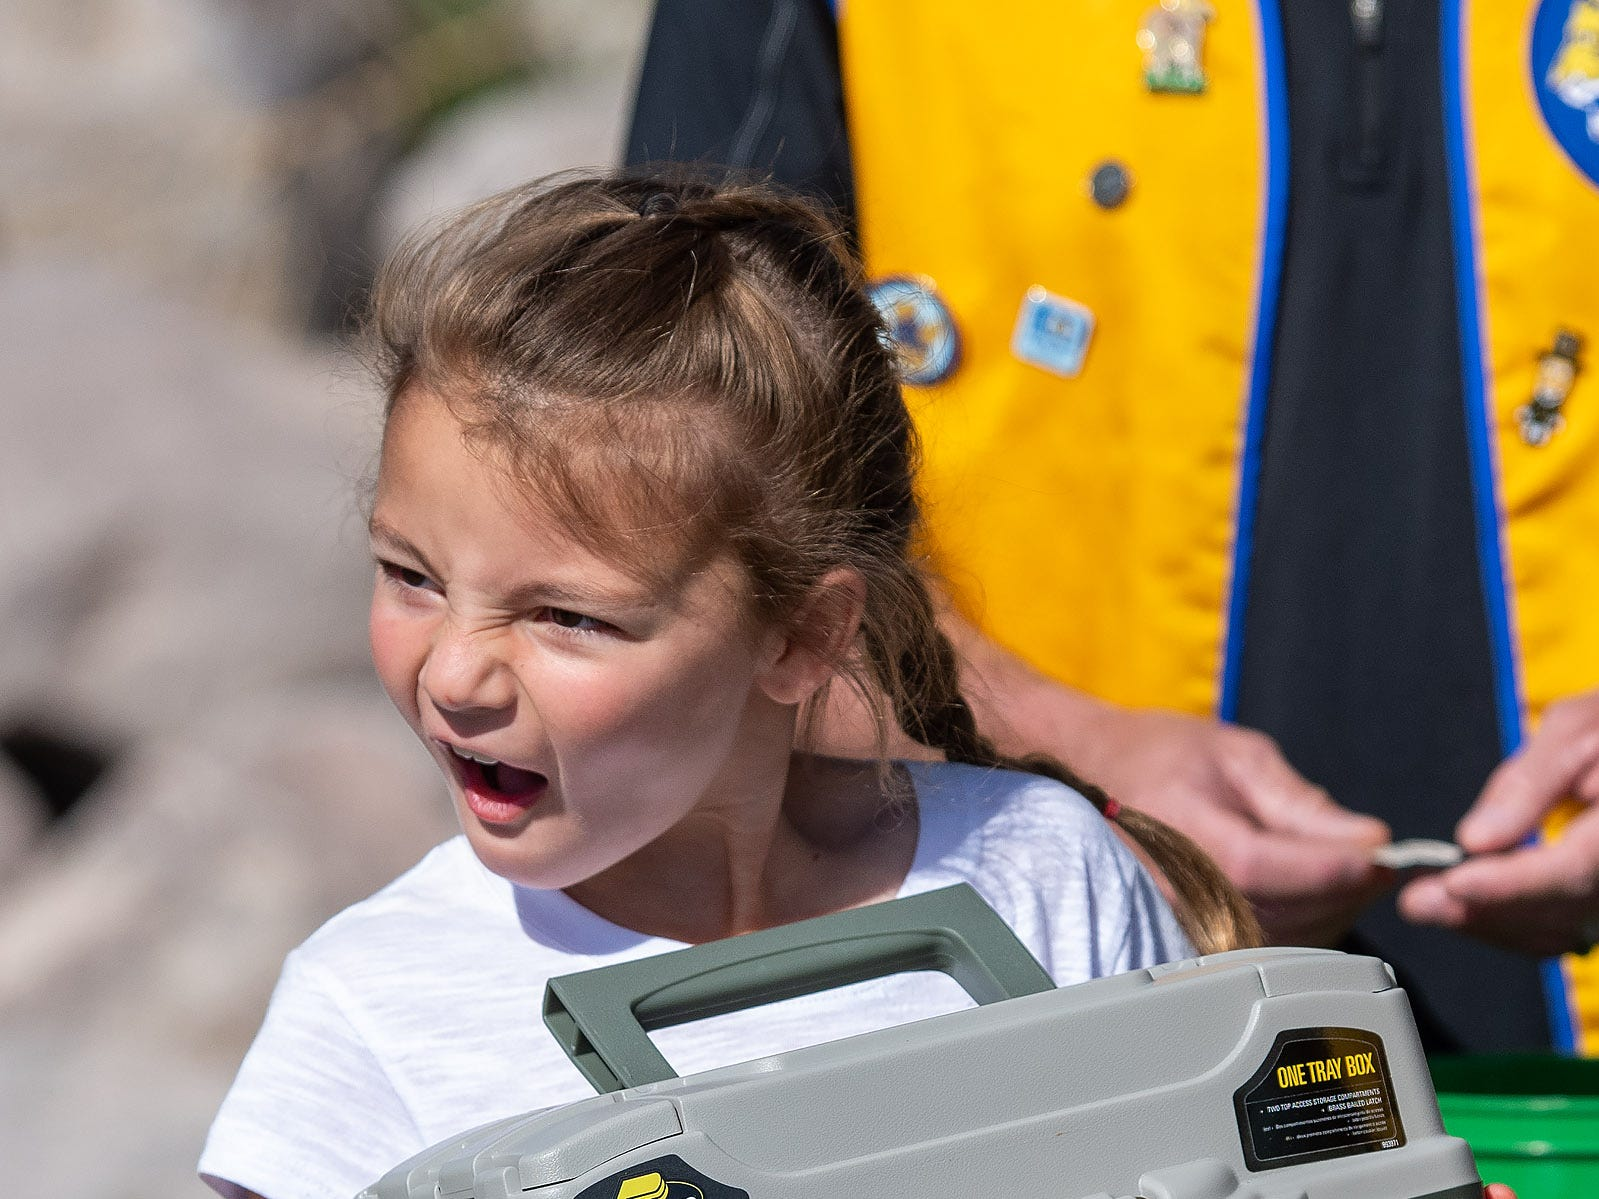 Tilly Smith, 7, from Yerington, shows off her tackle box she won in the raffle.